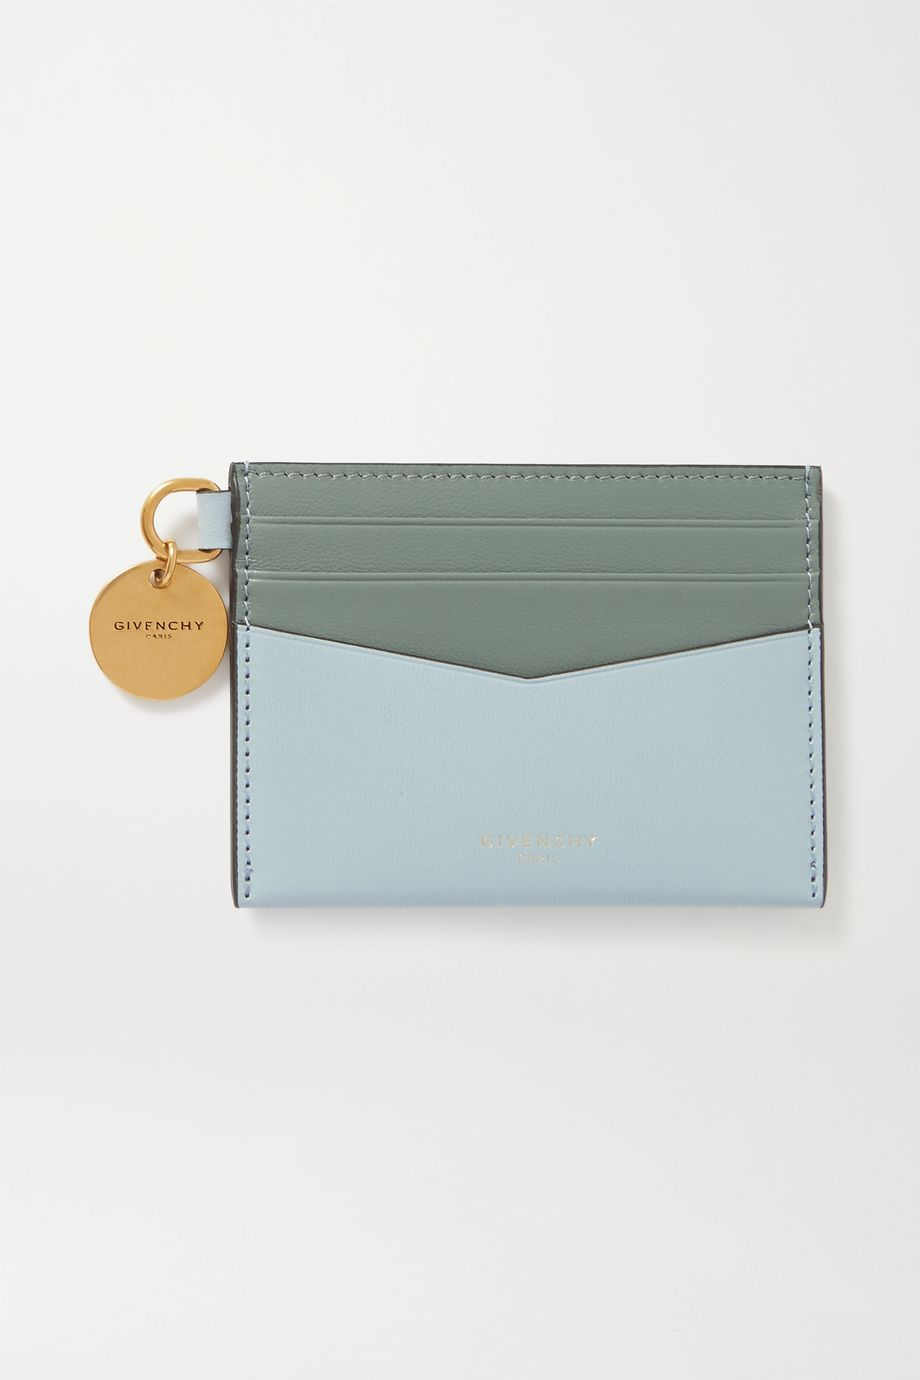 Givenchy Two-tone leather cardholder